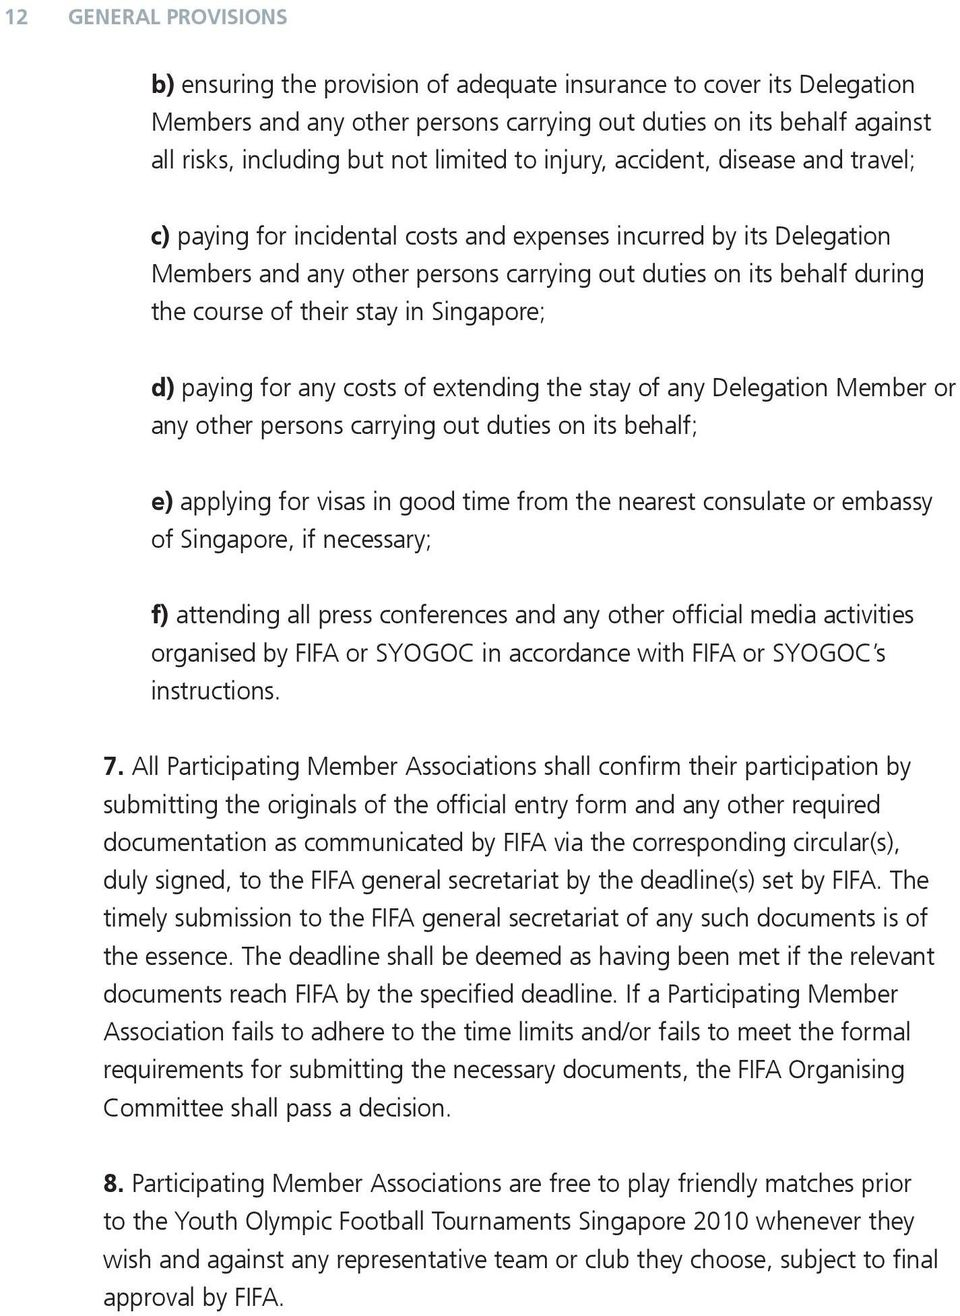 course of their stay in Singapore; d) paying for any costs of extending the stay of any Delegation Member or any other persons carrying out duties on its behalf; e) applying for visas in good time